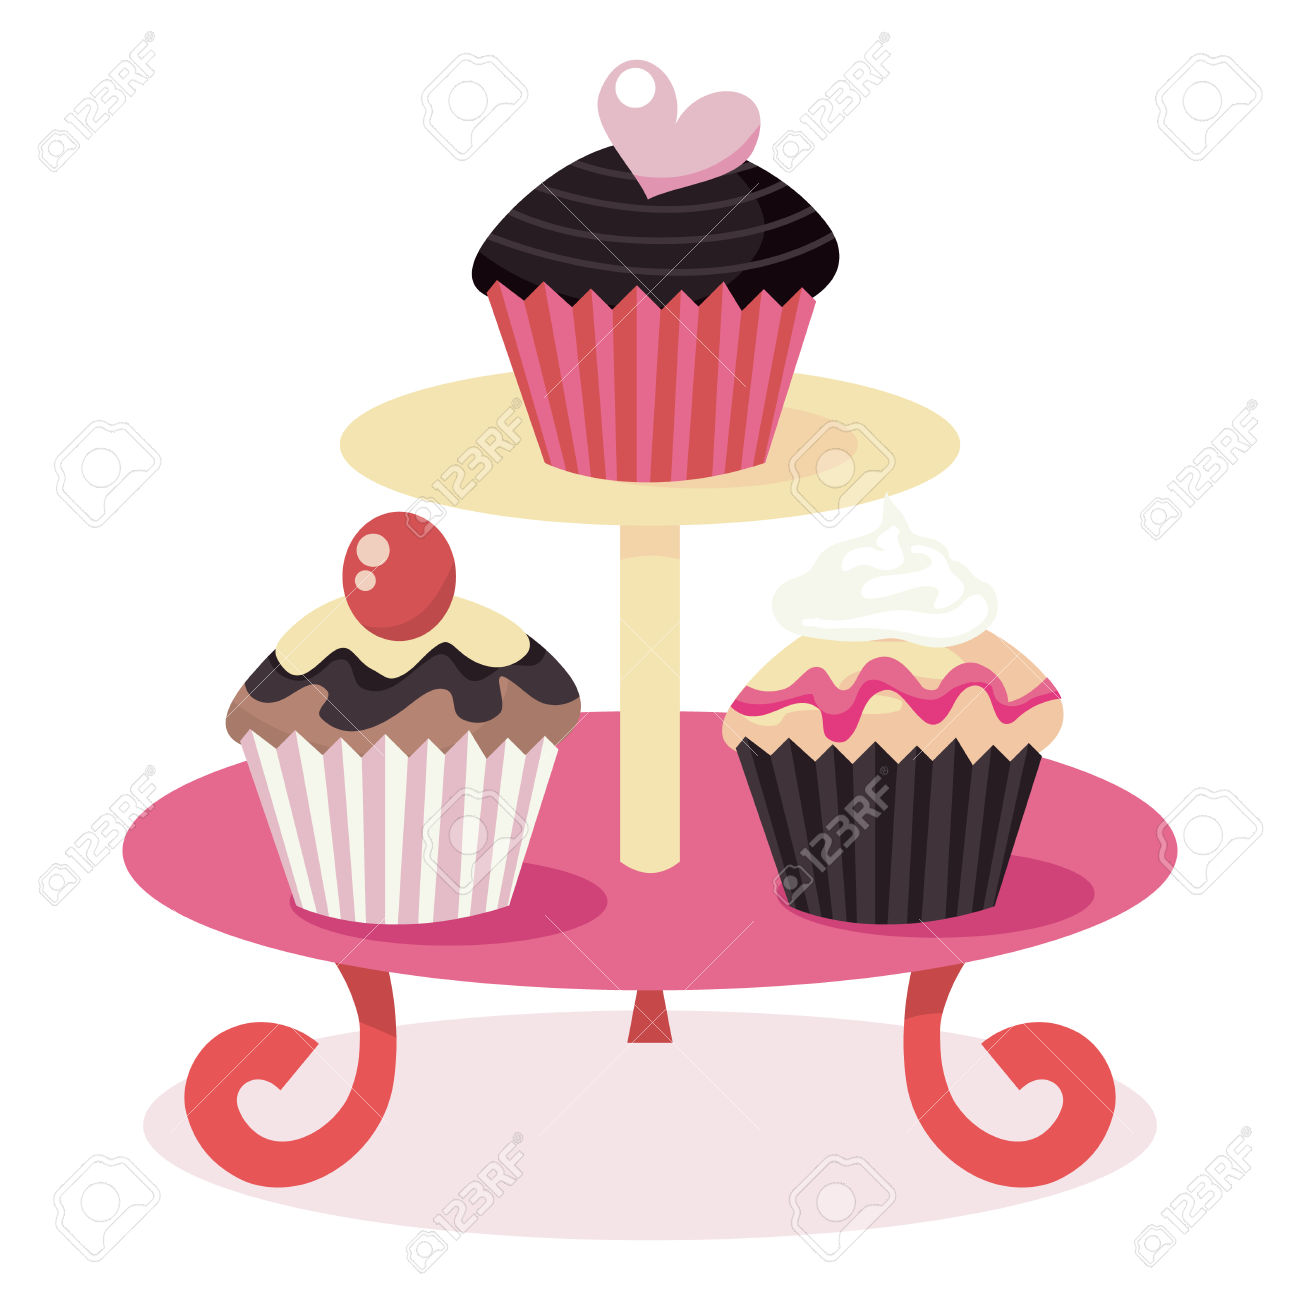 A Vector Illustration Of Cute Cupcakes On A Cupcake Stand. Royalty.